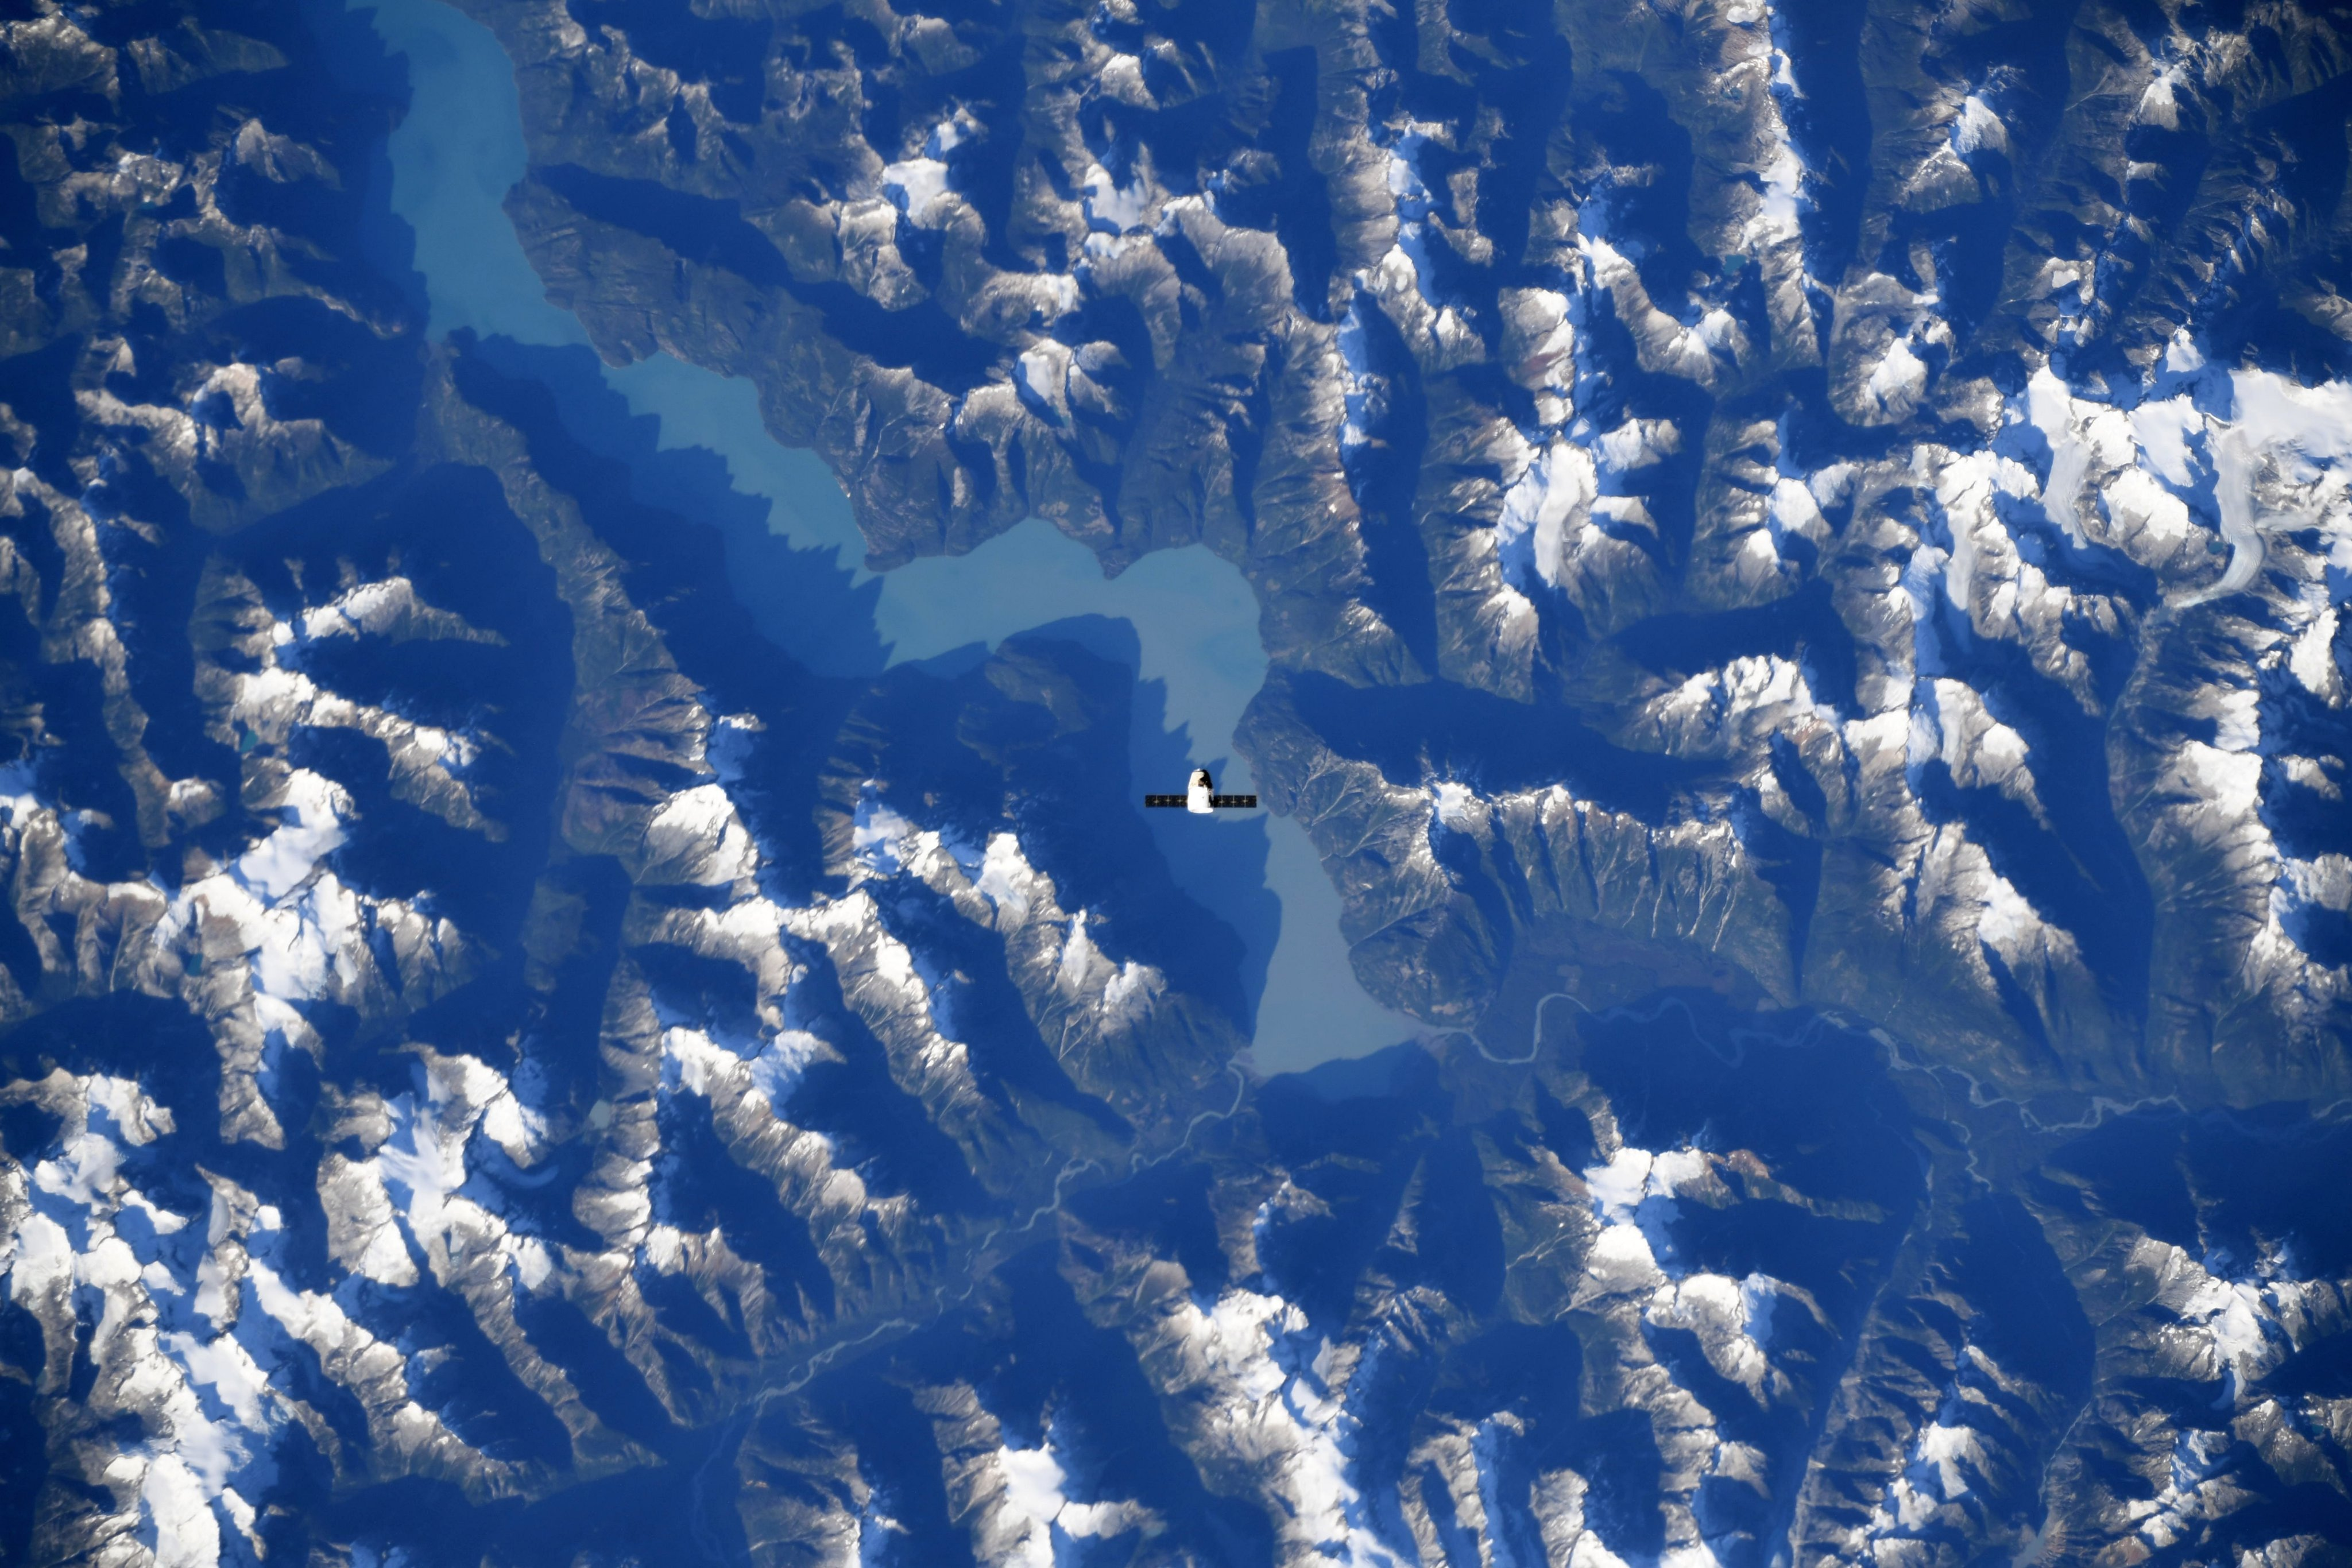 The SpaceX Dragon resupply ship is pictured above the Canadian Rocky Mountains